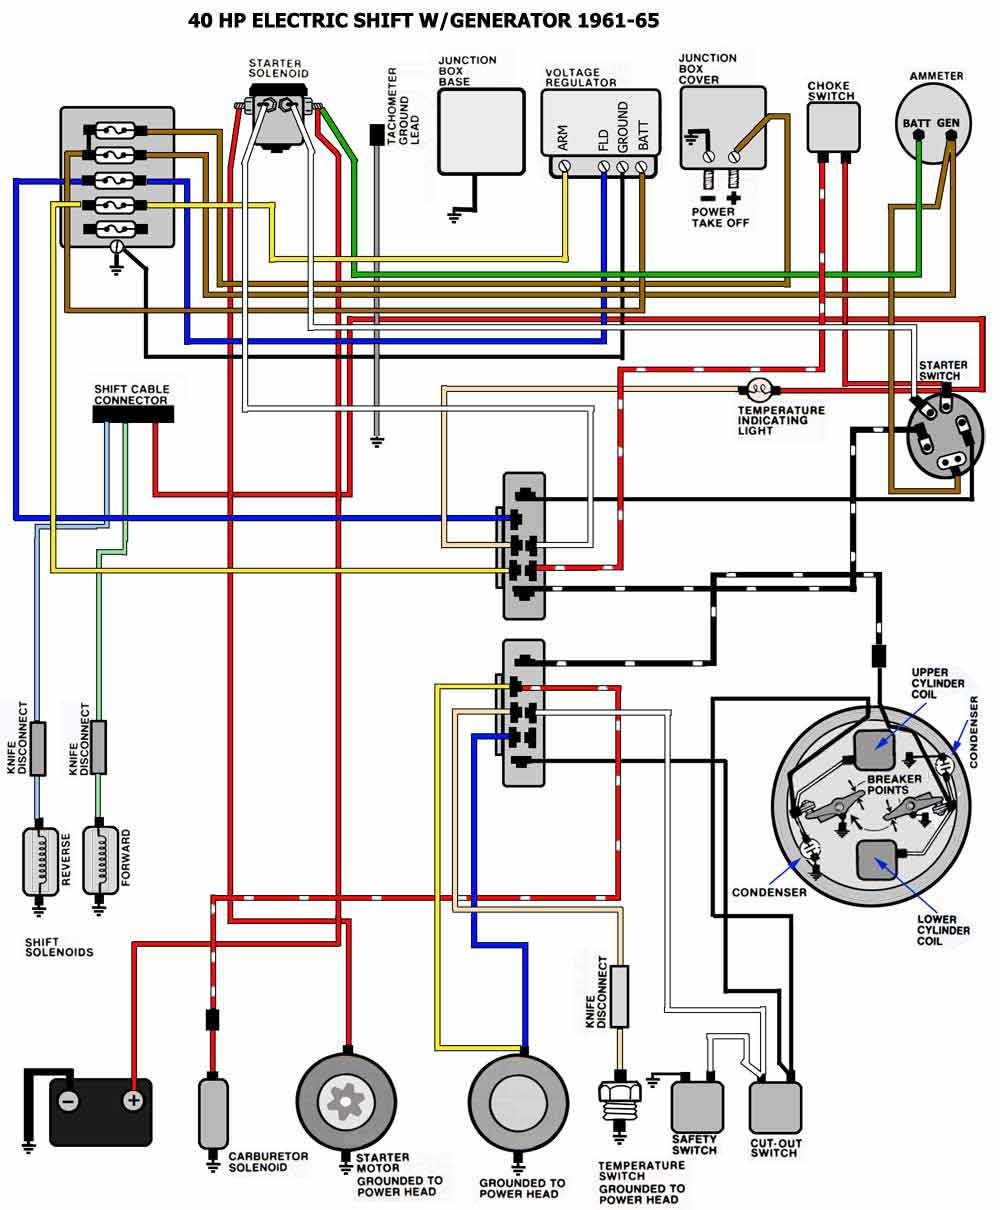 1977 Omc Wiring Diagram Anything Diagrams Harness For Mercury Outboard Motor Free Download Rh Xwiaw Us Ignition